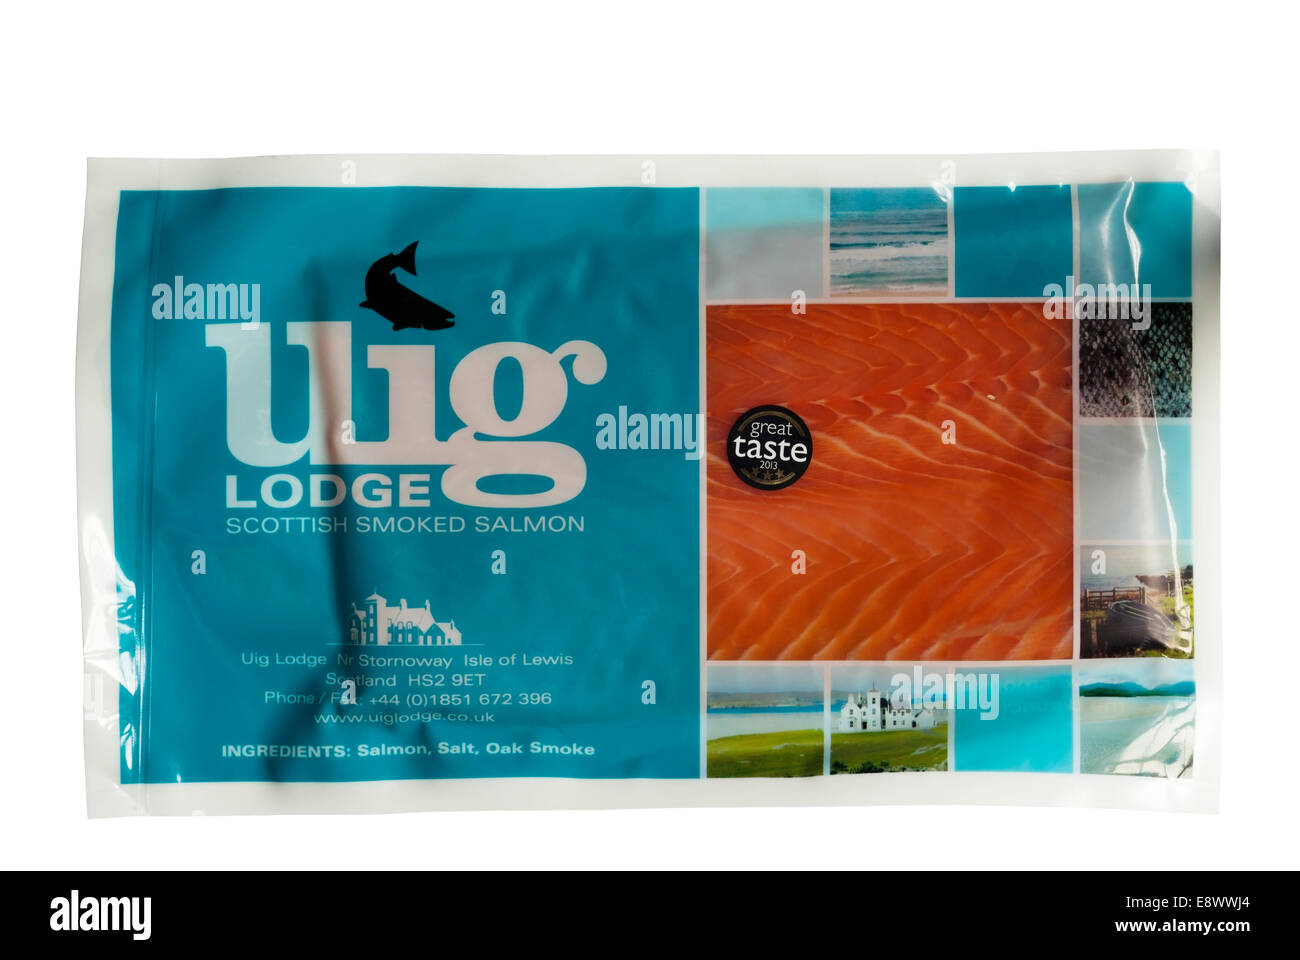 A packet of Uig Lodge Scottish Smoked Salmon from the Isle of Lewis in the Outer Hebrides. - Stock Image